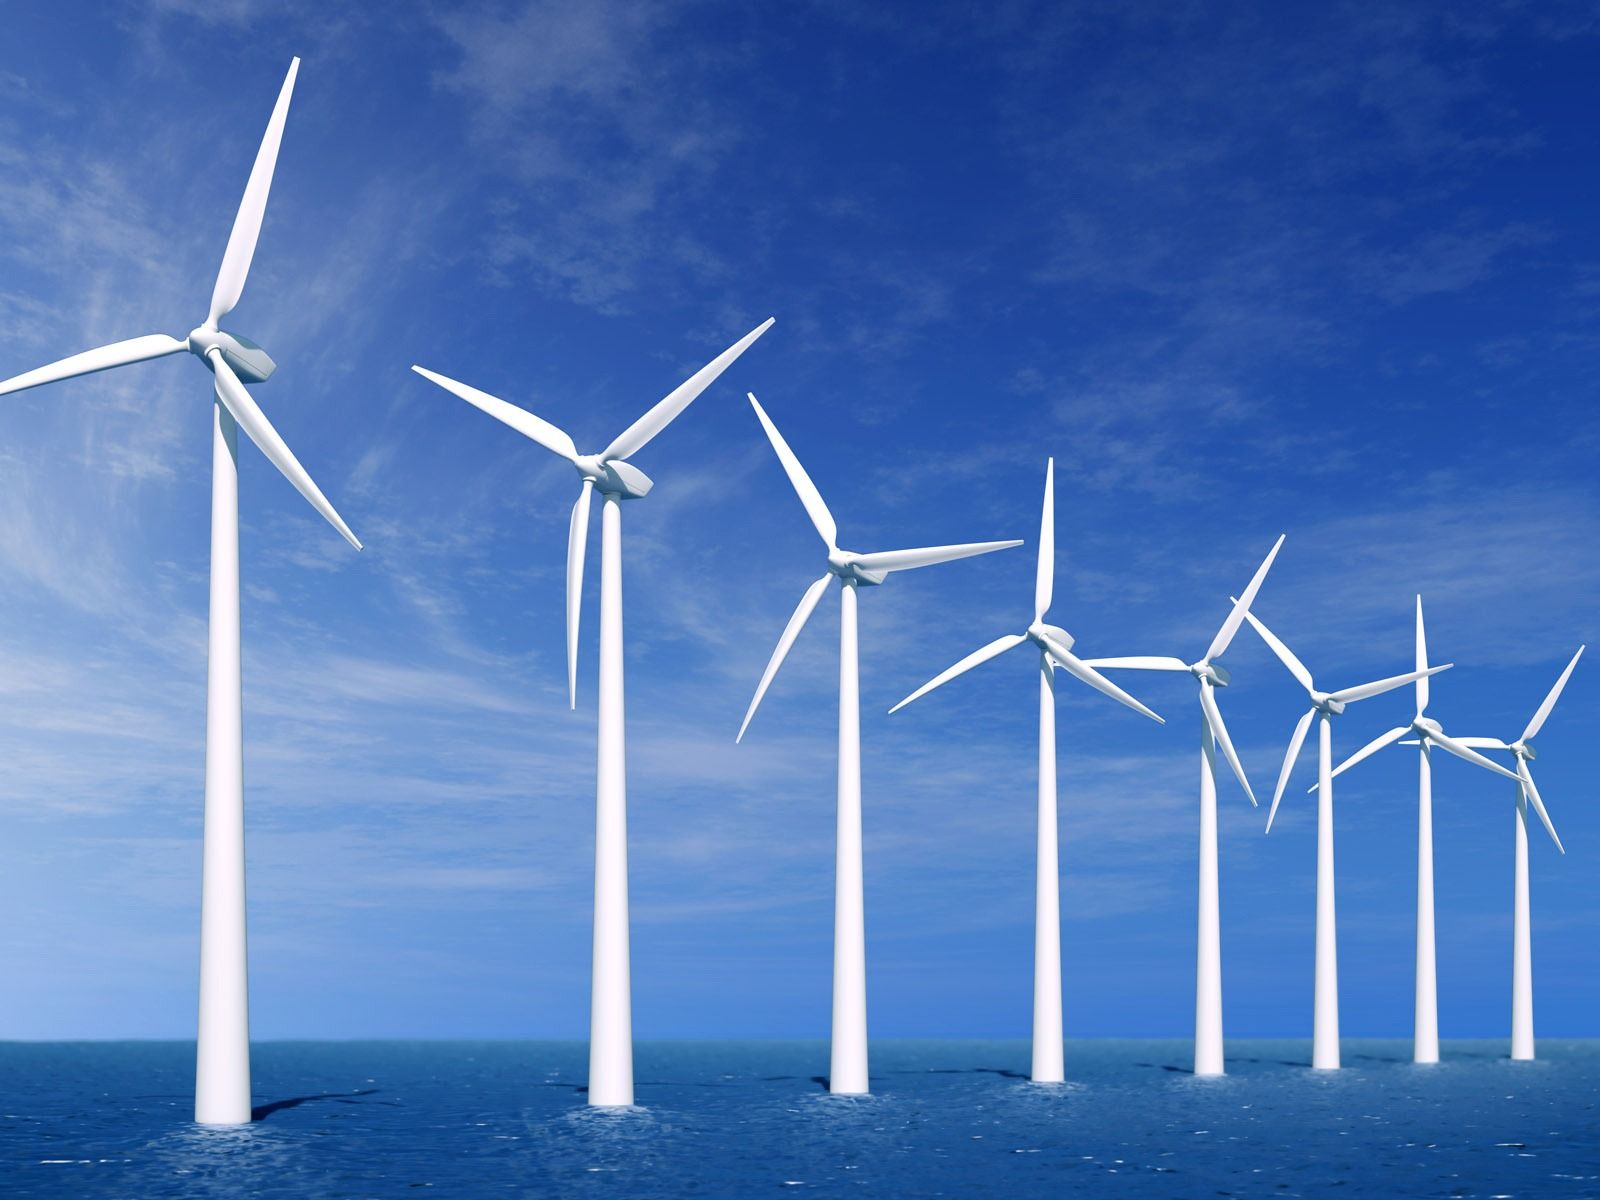 list of synonyms and antonyms of the word modern windmills